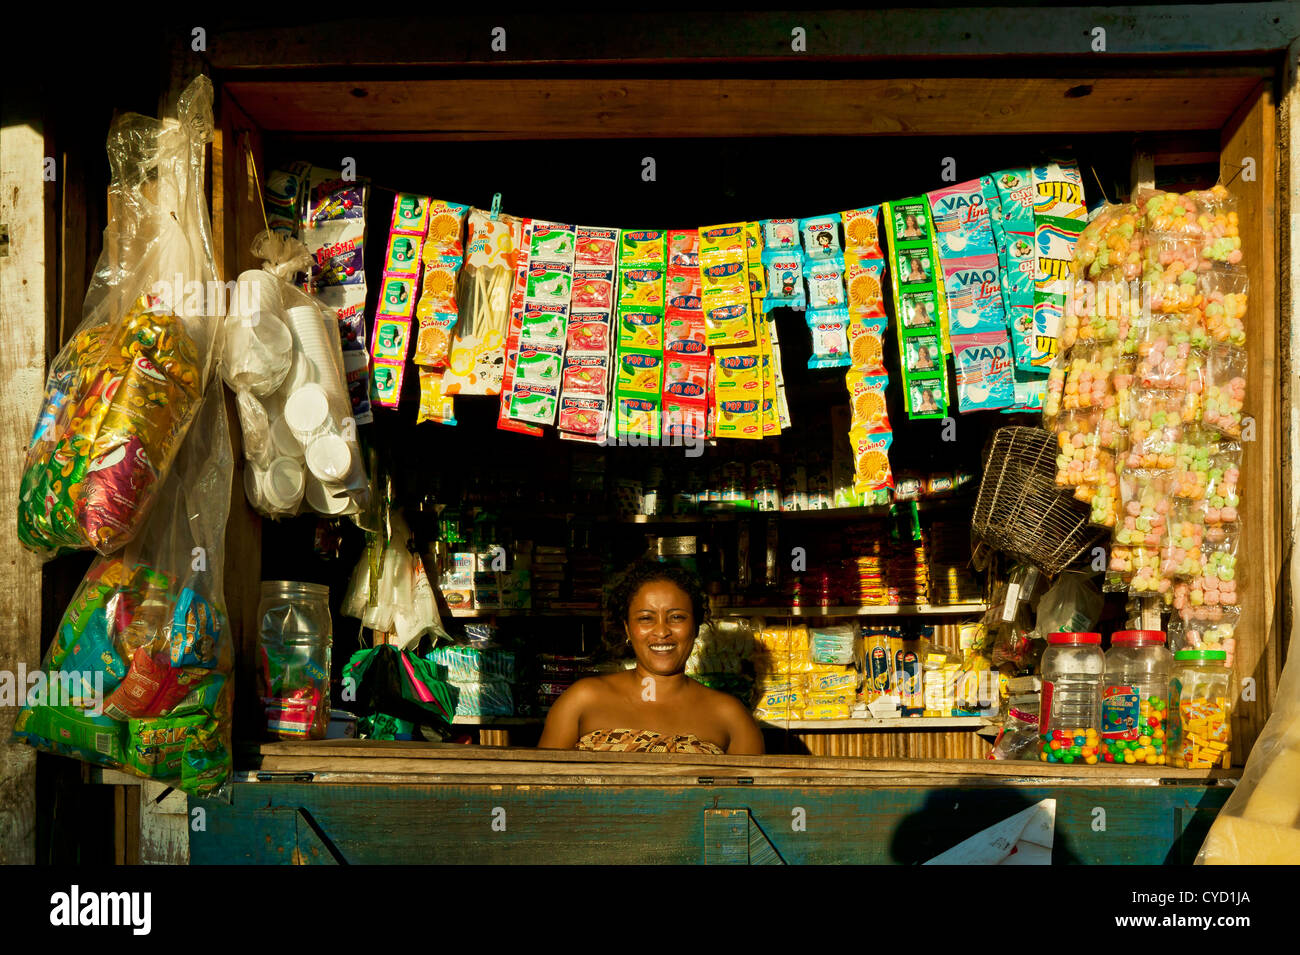 Shop at Andoany Or Hell-Ville, Nosy Be Island,Madagascar - Stock Image